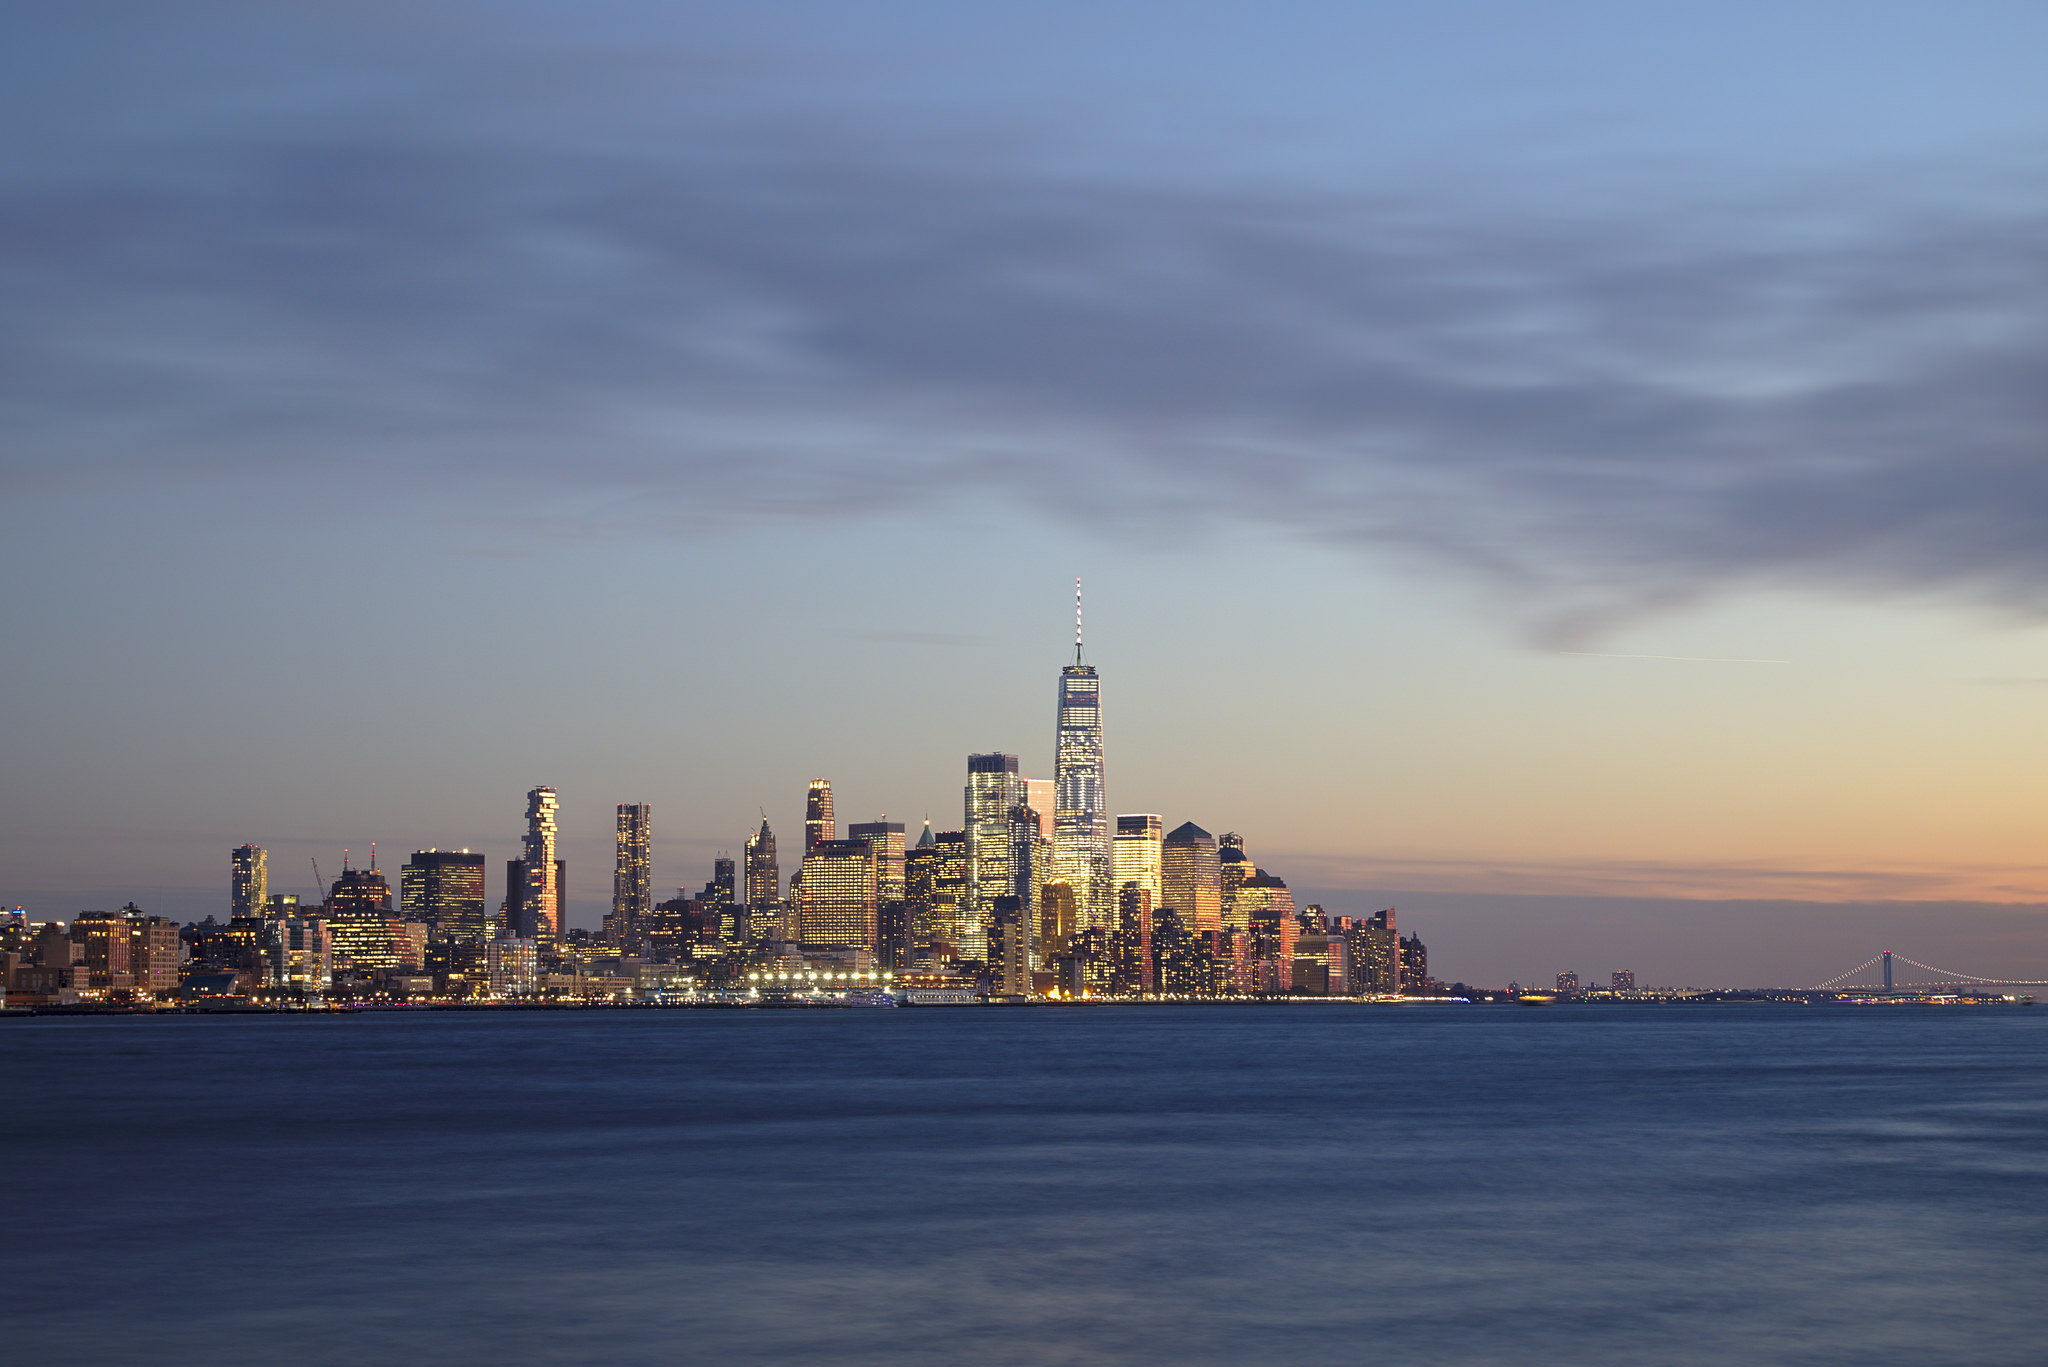 Lower Manhattan as seen from The Riva Pointe (NJ), USA